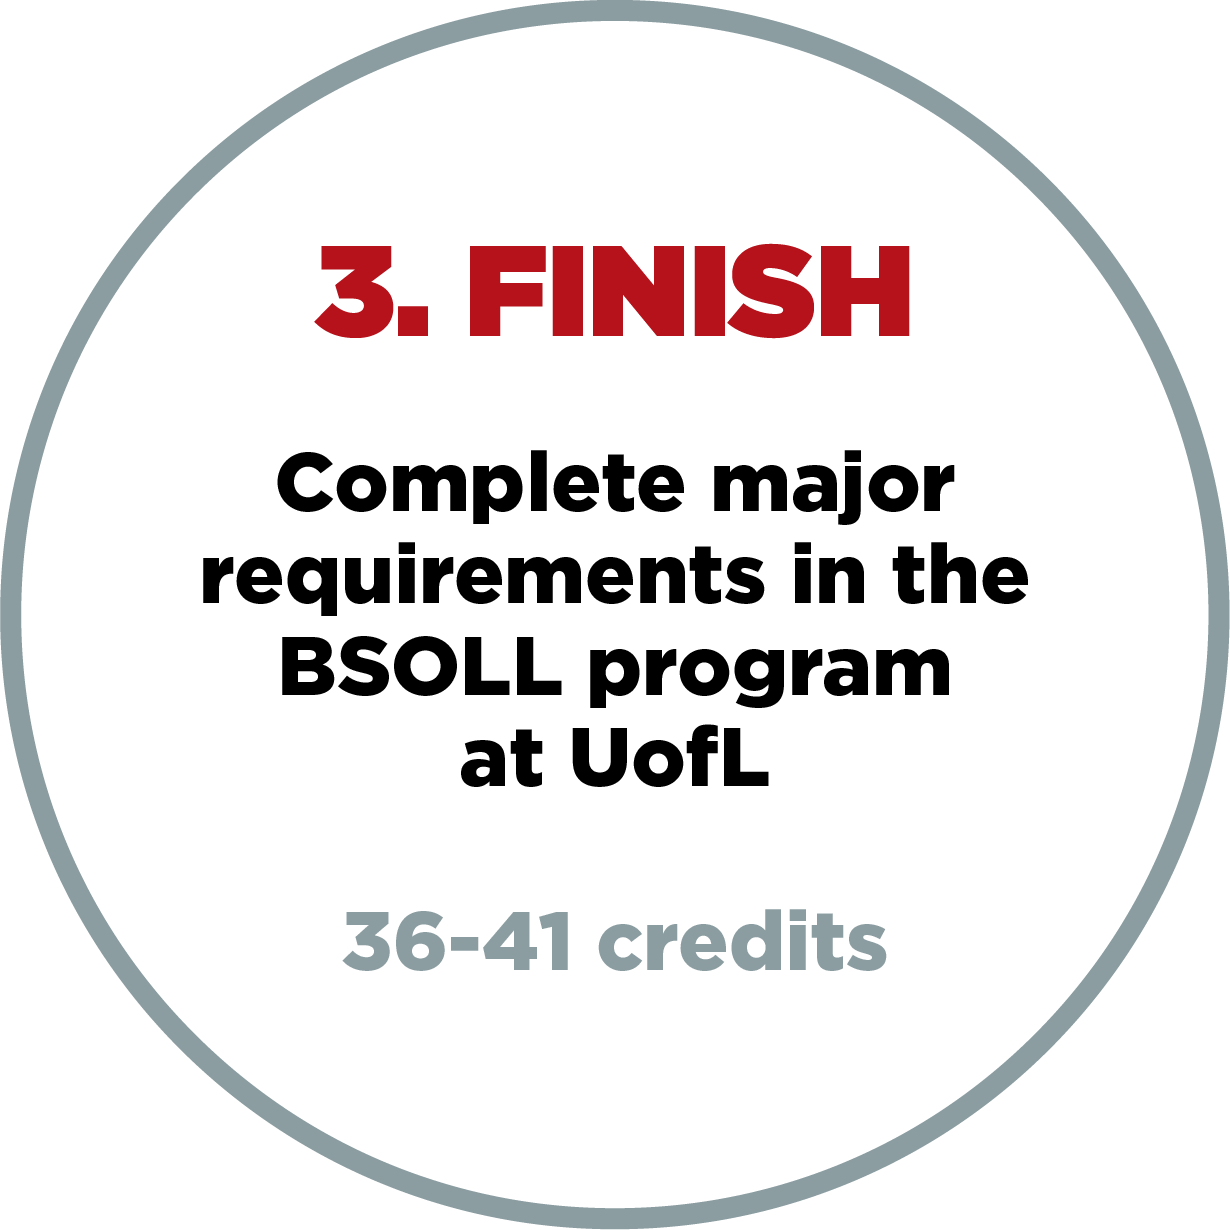 3. finish complete major require,ents in te bsoll program at ul